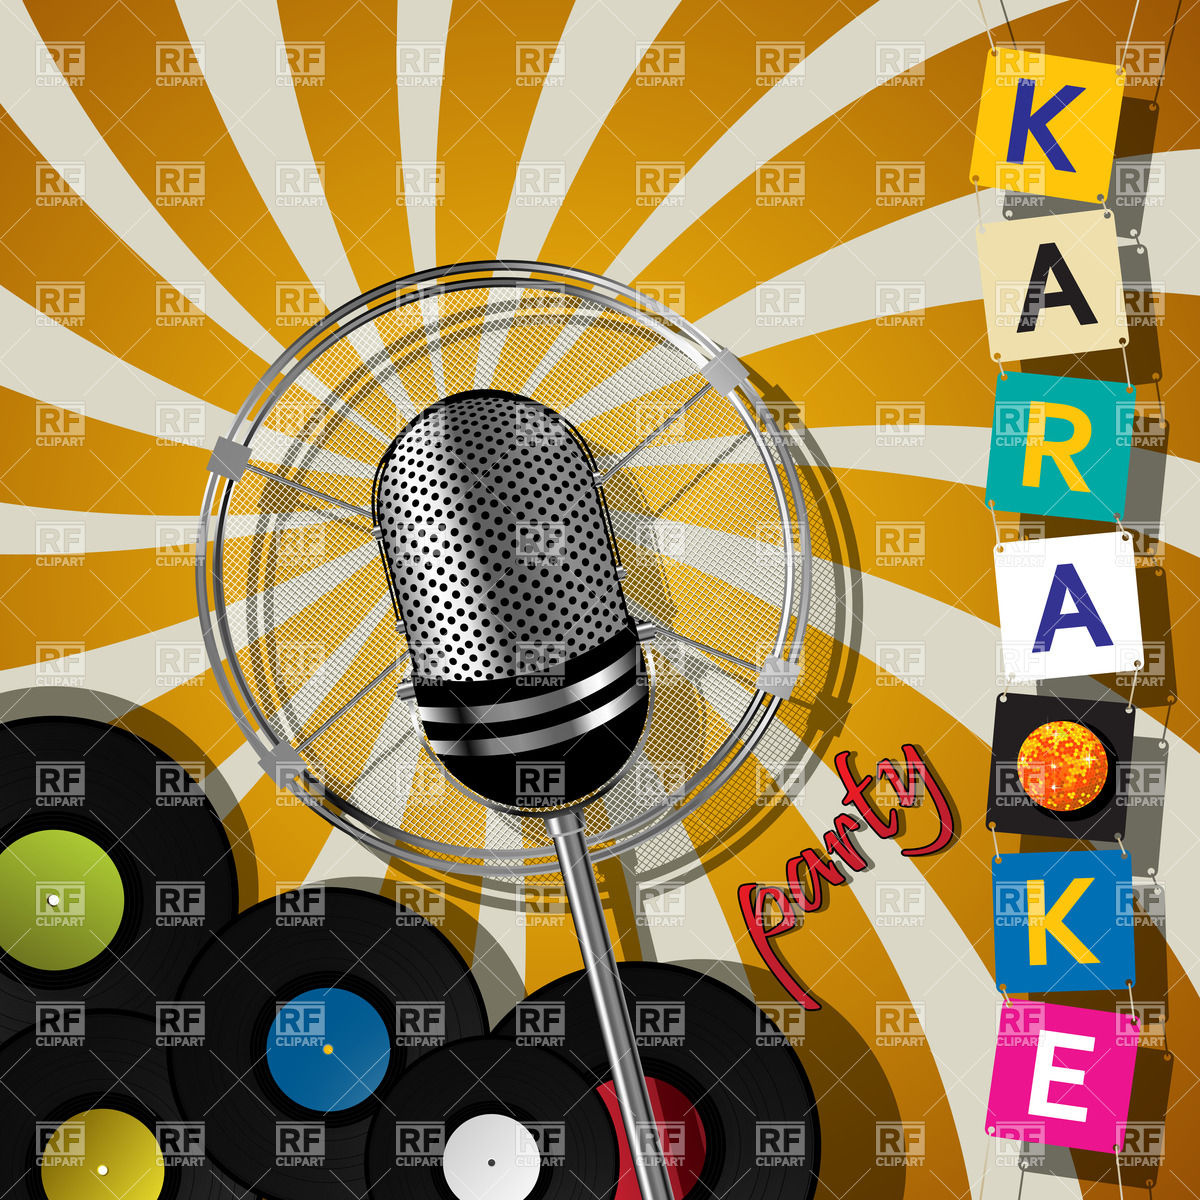 Karaoke Events 20919 Objects Download Royalty Free Vector Clipart